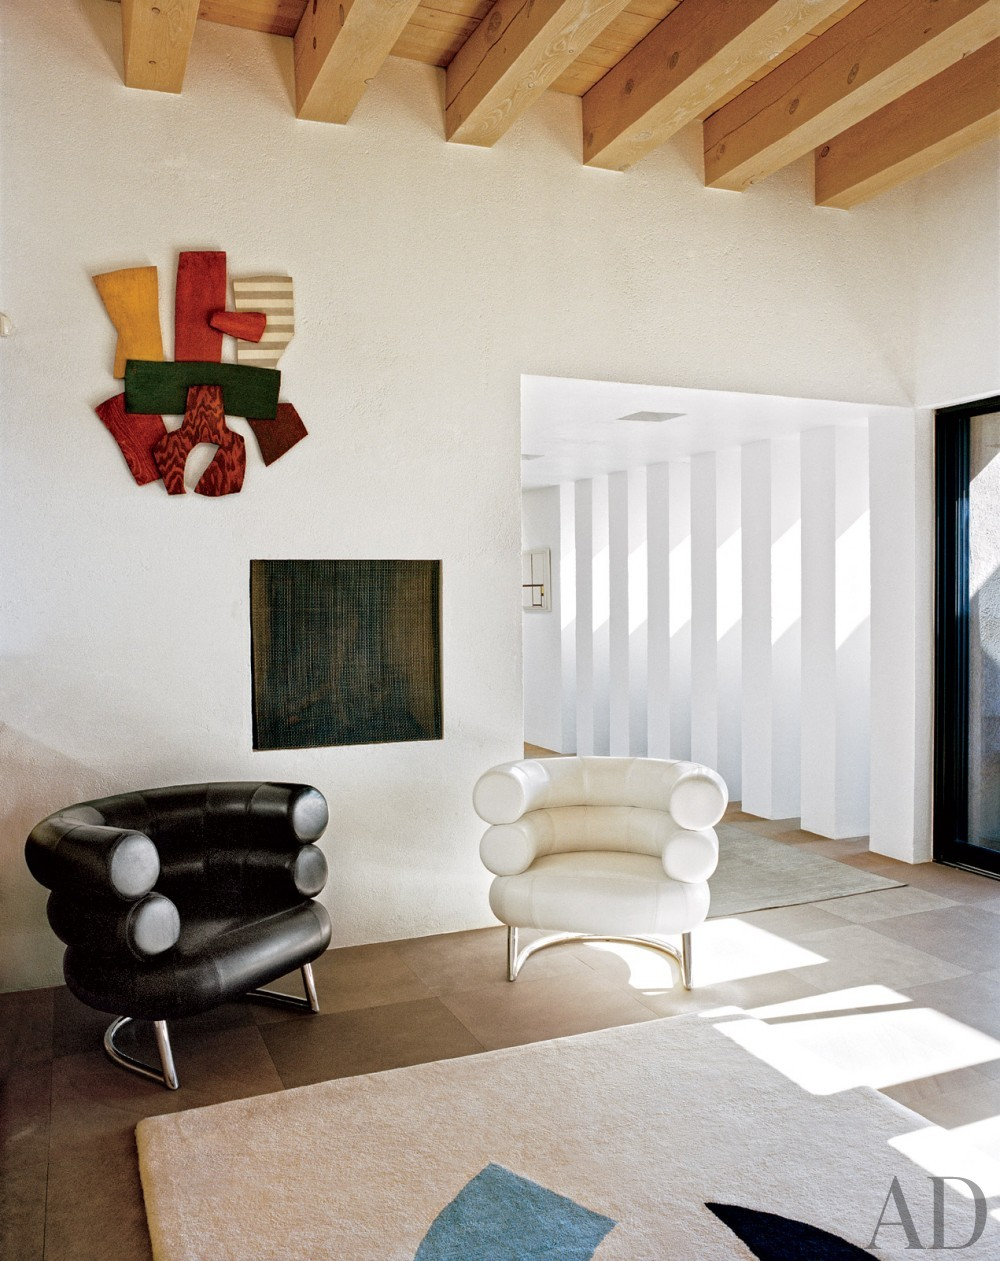 Rustic Living Room and Ralph Ridgeway in Santa Fe, New Mexico